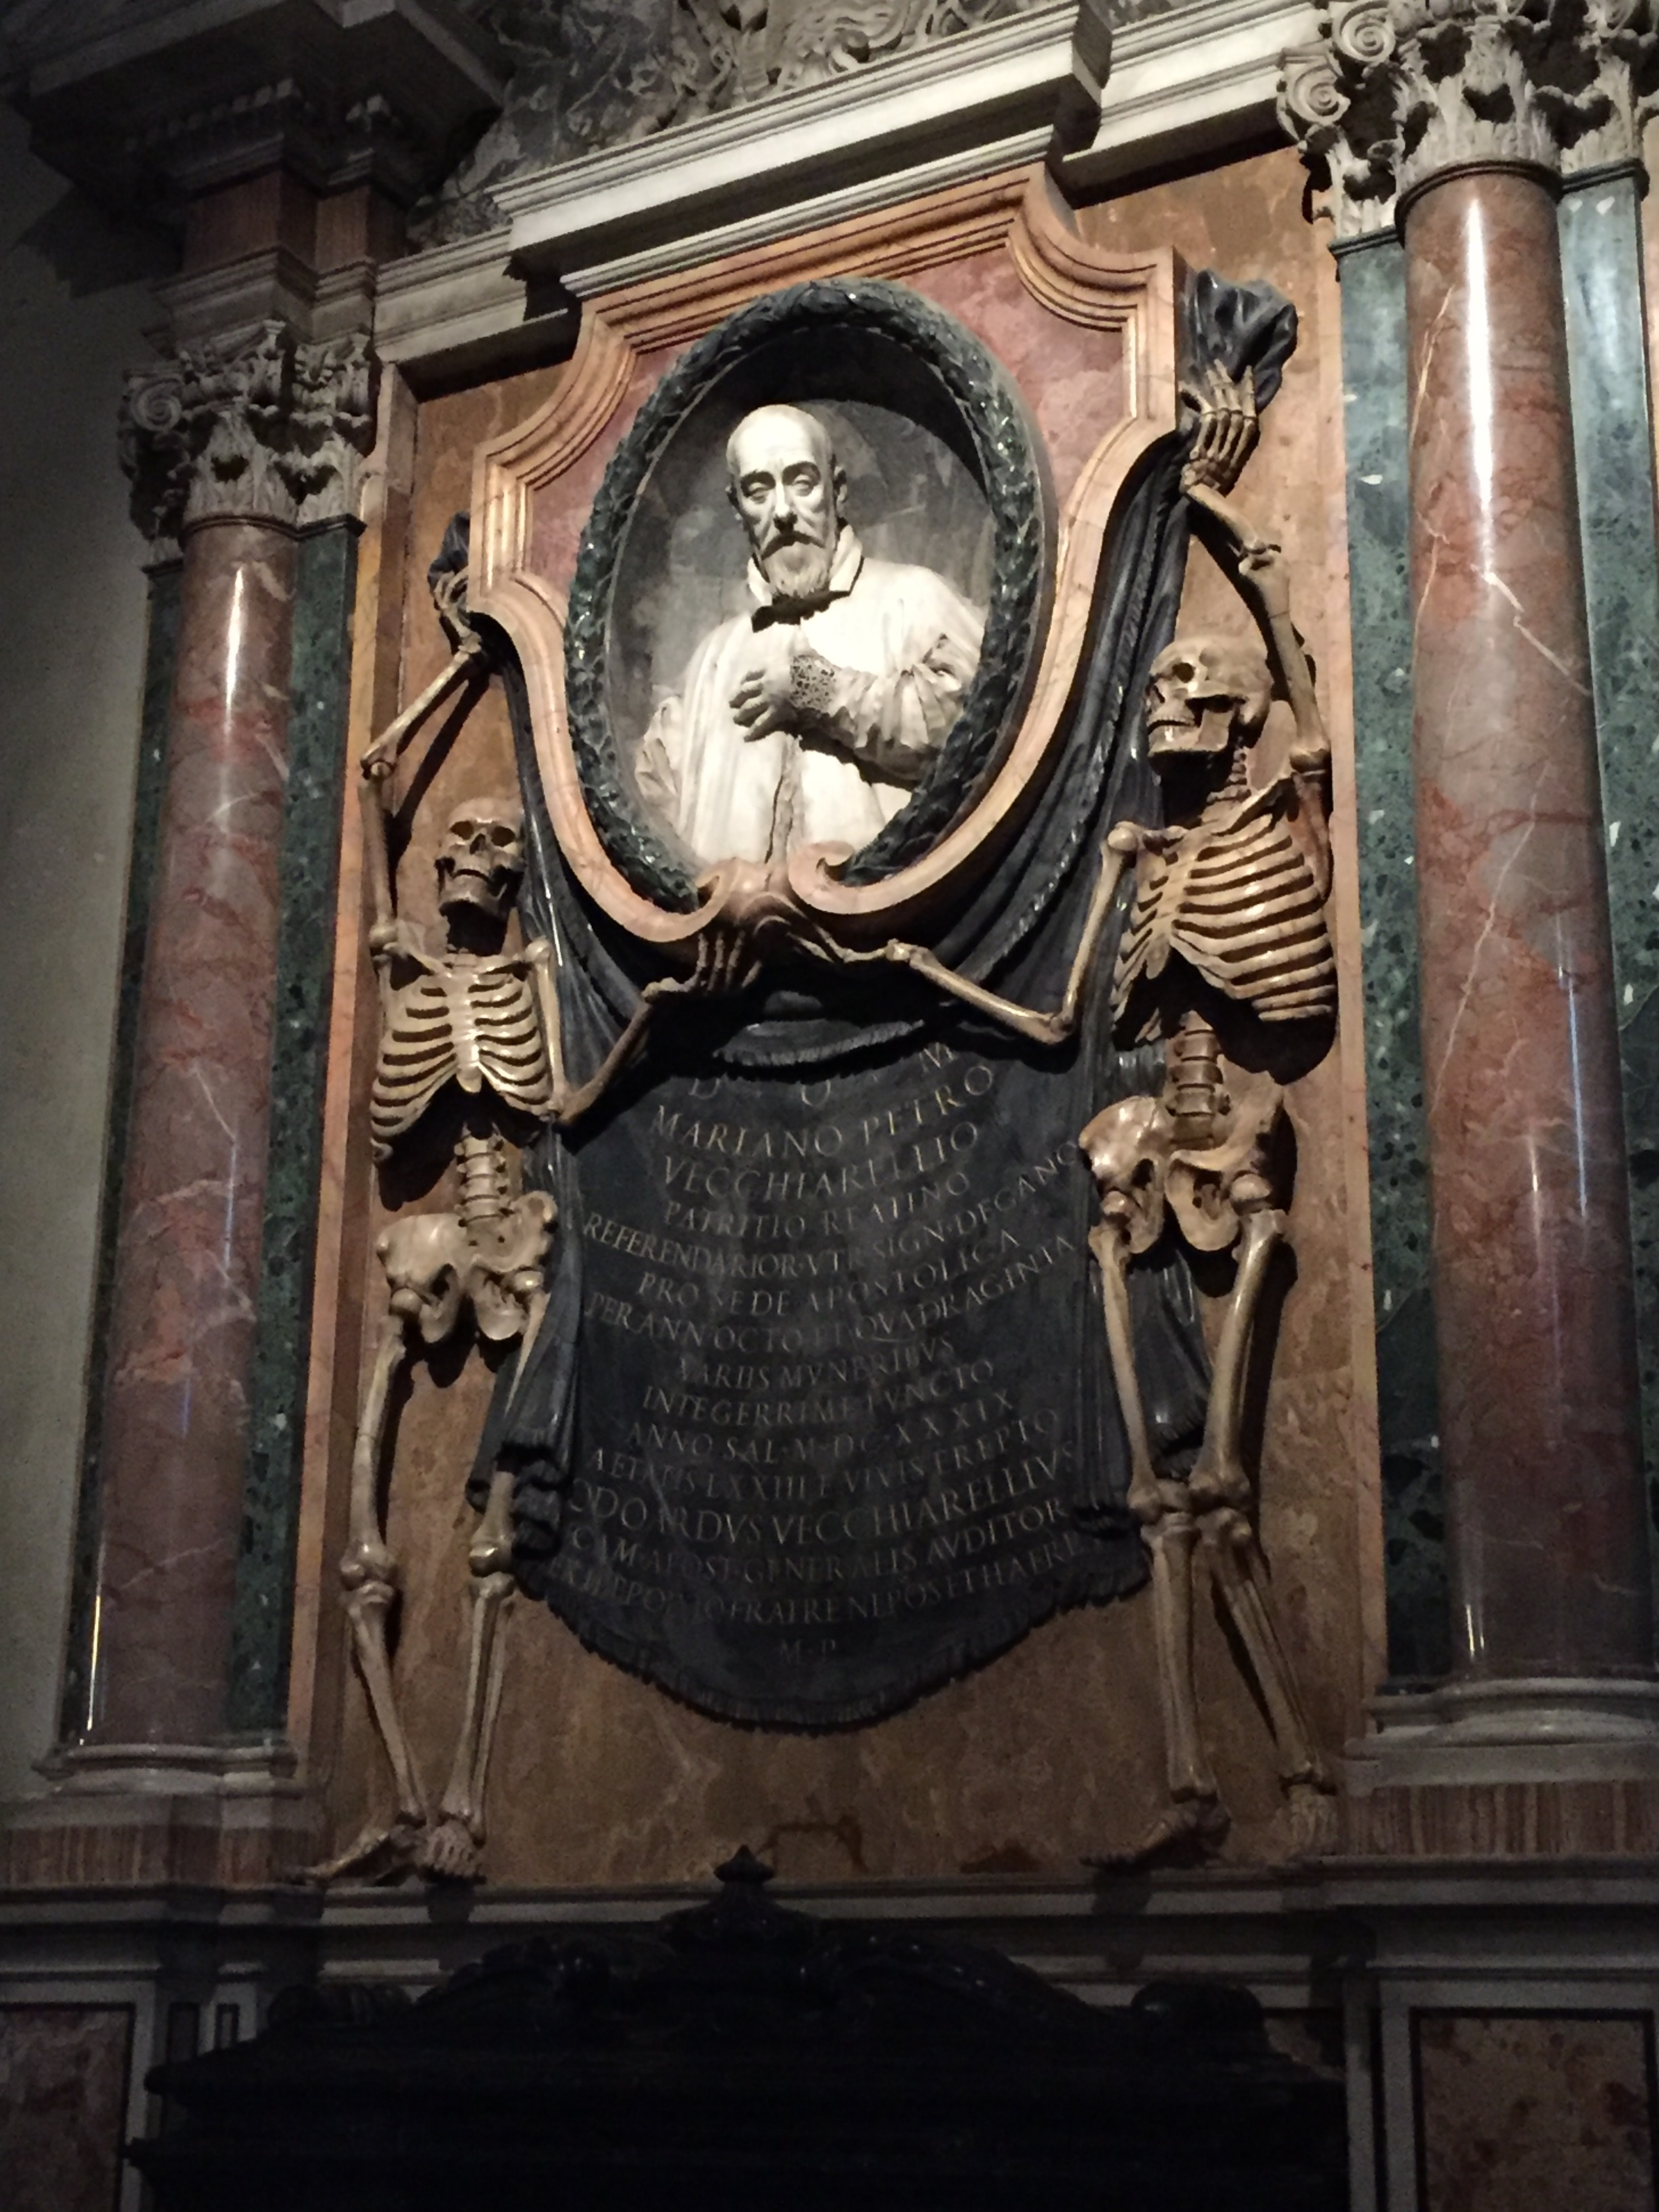 Skeleton art at St. Peter in Chains in Rome. Photo credit: M. Ciavardini